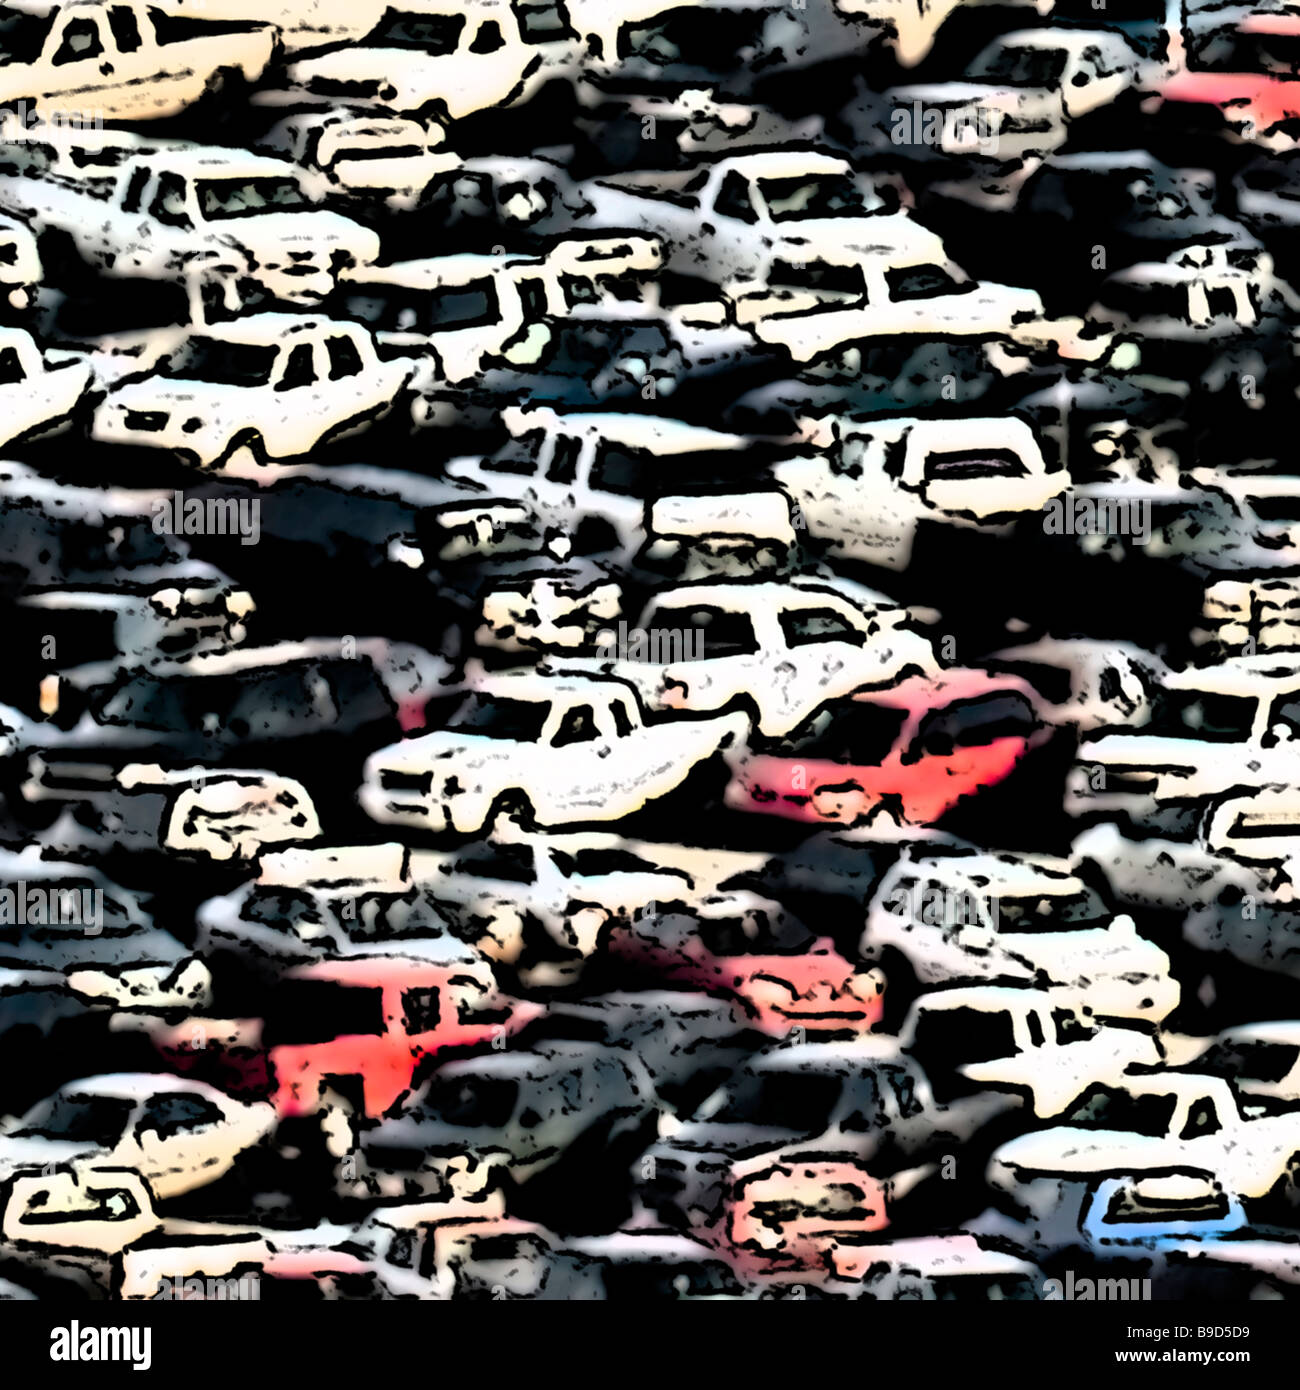 cars trucks automobiles art parked many vehicles - Stock Image